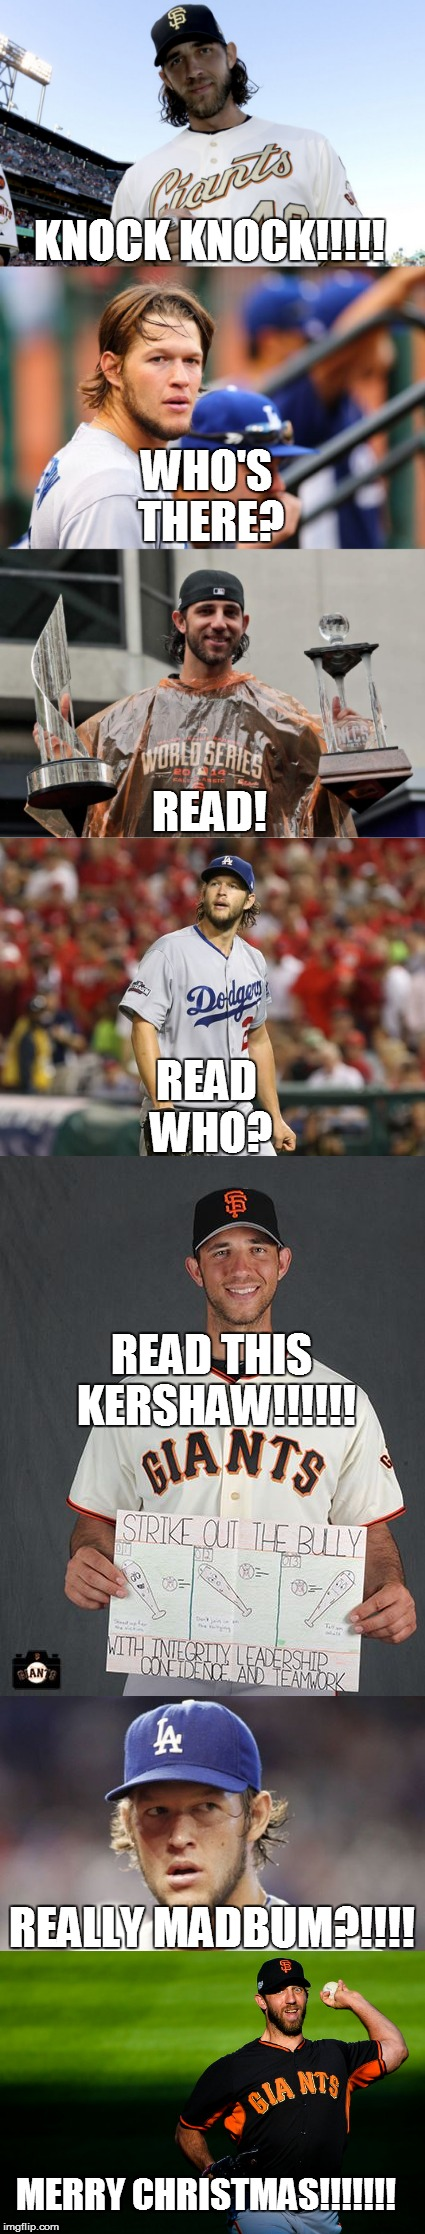 Kershaw and Bumgarner  |  WHO'S THERE? KNOCK KNOCK!!!!! READ! READ WHO? READ THIS KERSHAW!!!!!! REALLY MADBUM?!!!! MERRY CHRISTMAS!!!!!!! | image tagged in claytonkershaw,madisonbumgarner,mlb baseball,san francisco giants,los angeles dodgers | made w/ Imgflip meme maker